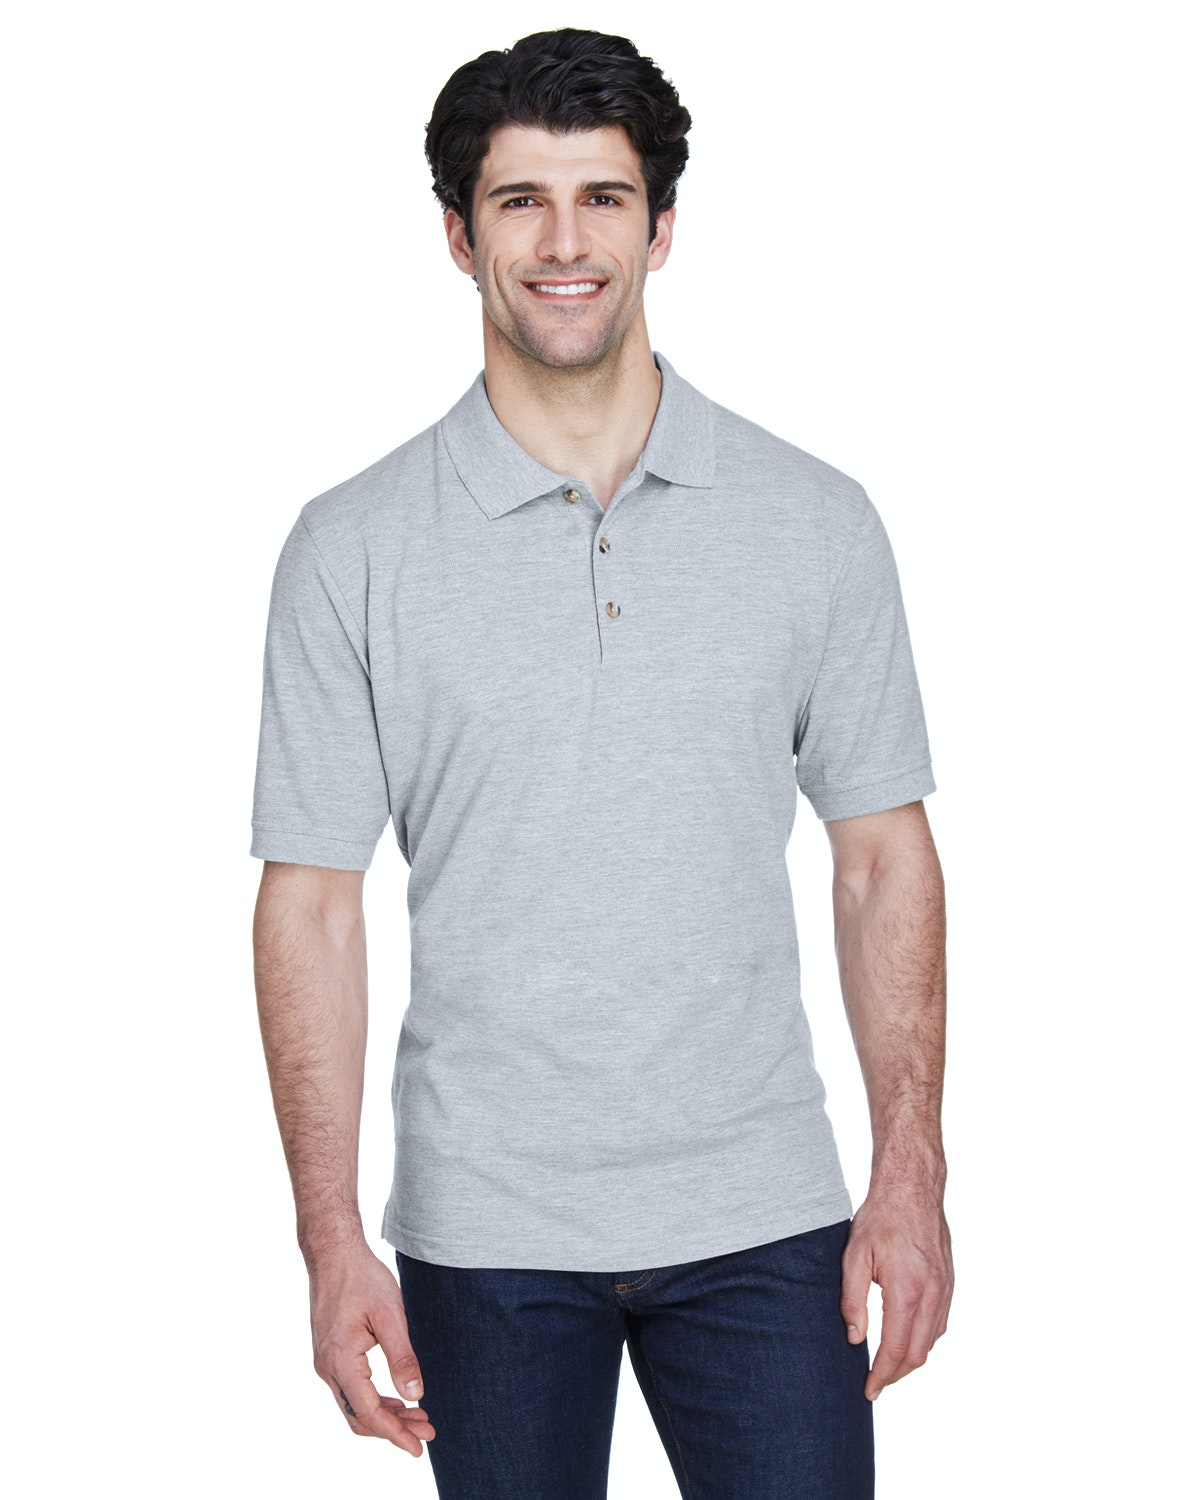 UltraClub 8535 Heather Grey